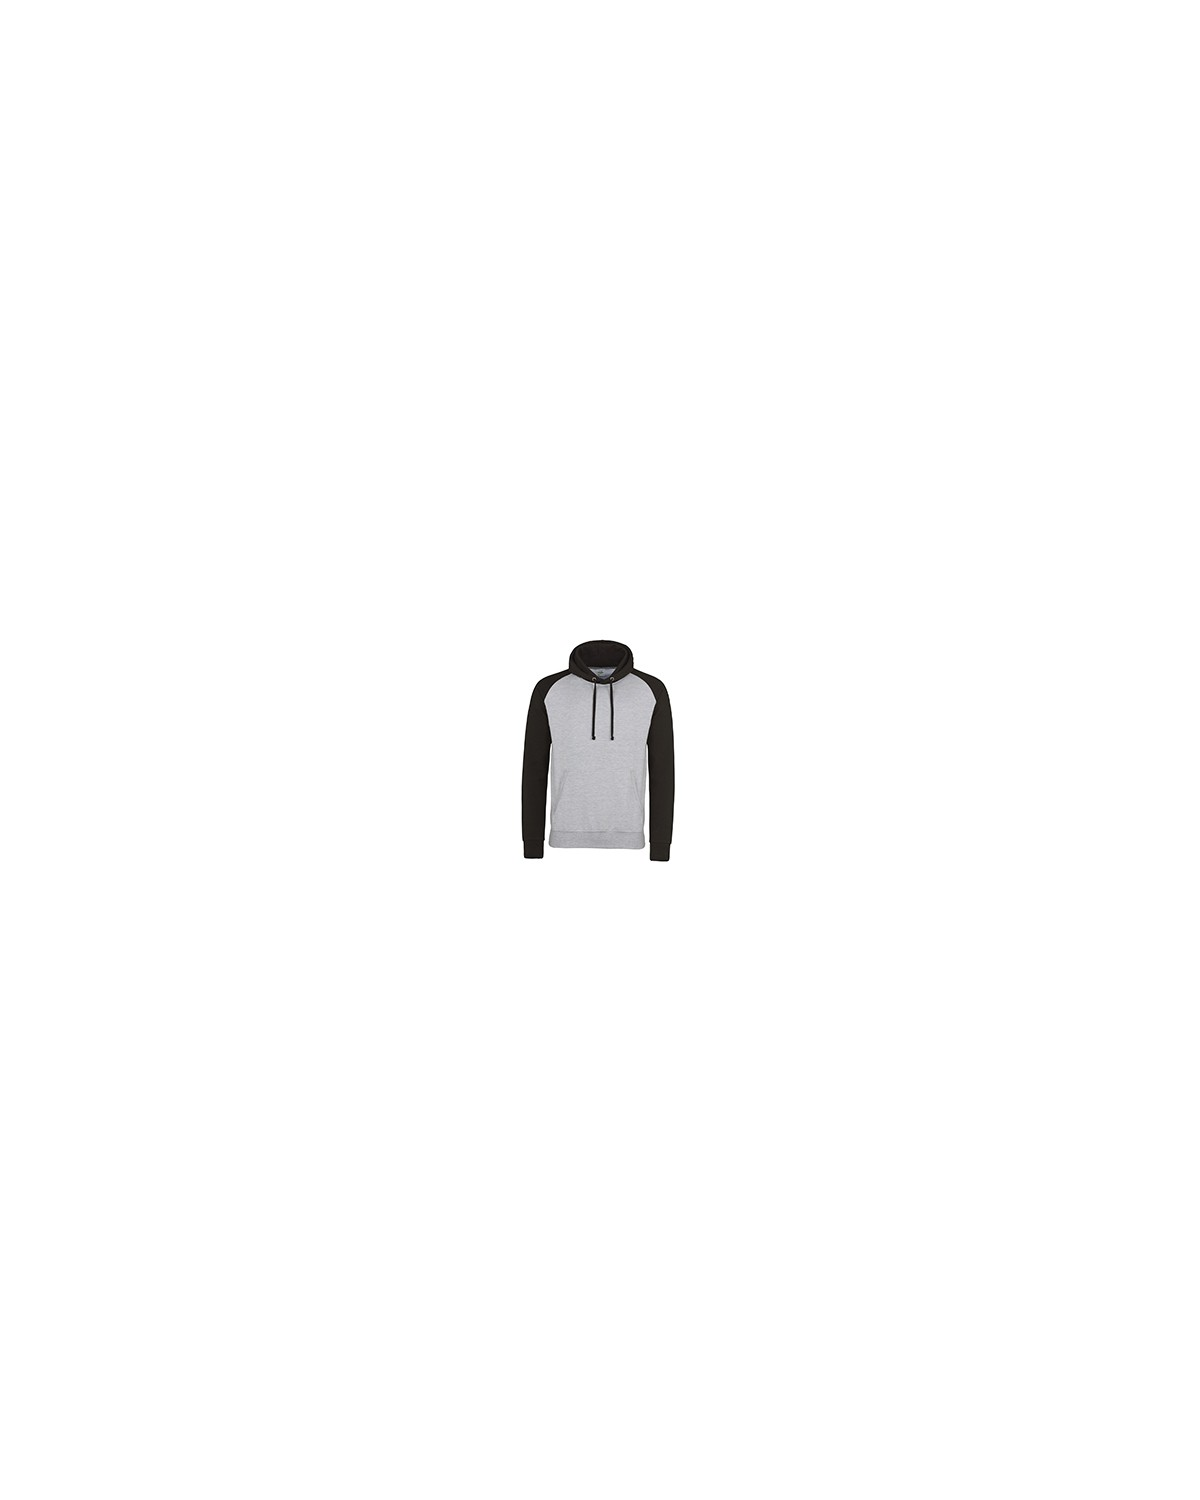 JHA009 Just Hoods By AWDis HTH GRY/ JET BLK